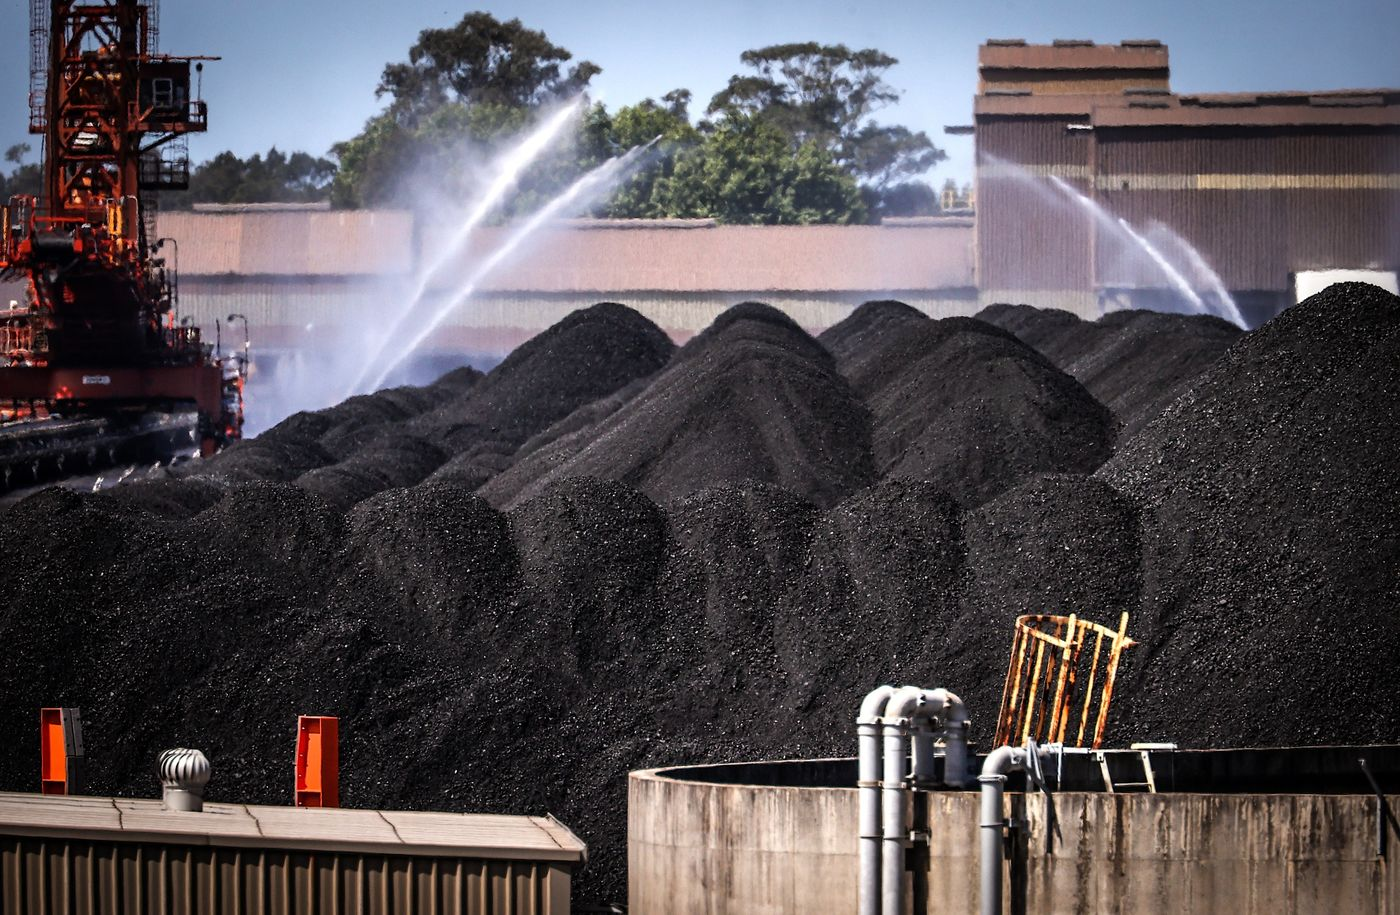 Water is sprayed over piles of coal at the Port of Newcastle in Australia on Oct. 12.